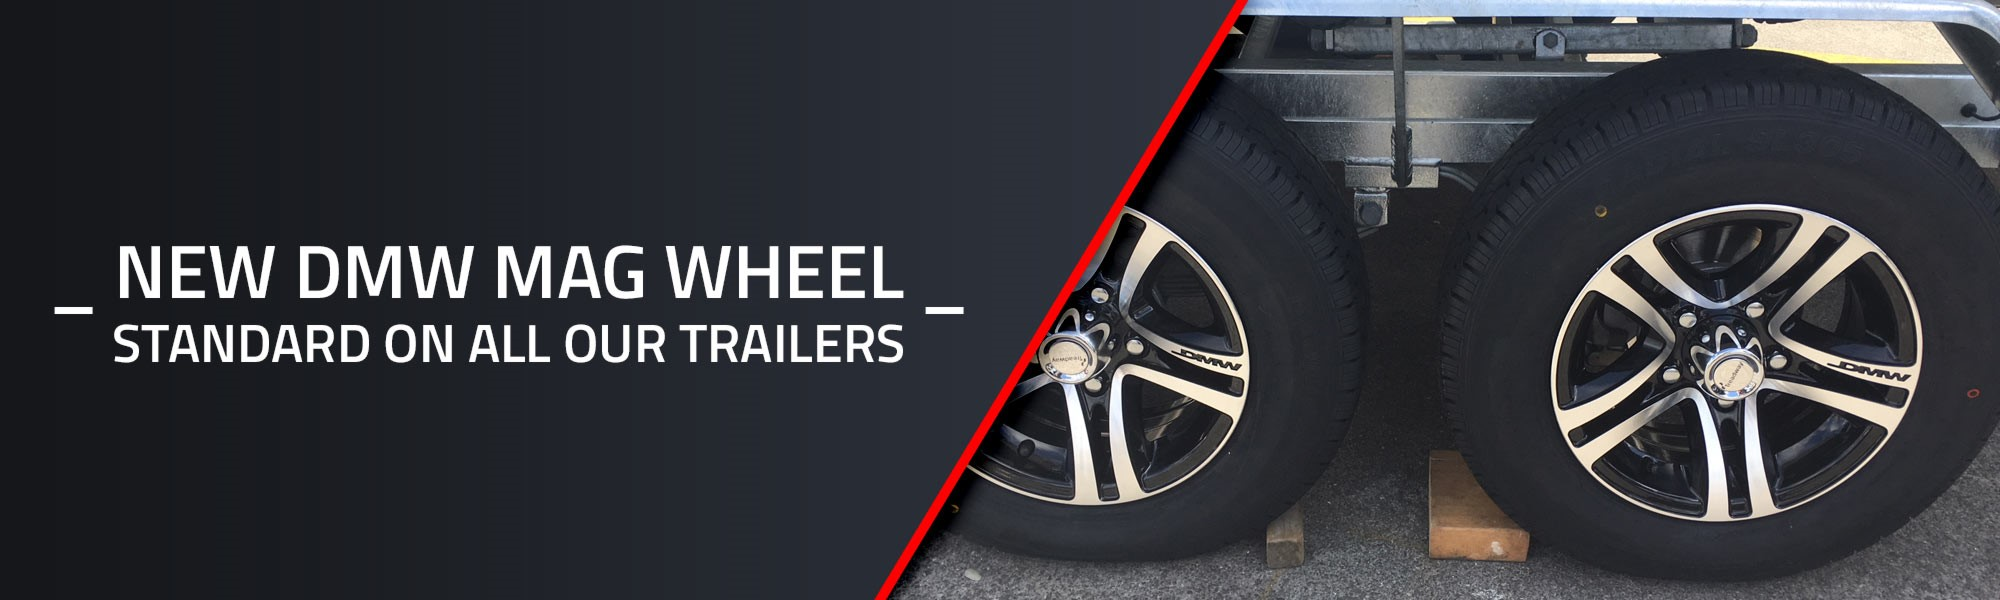 DMW Trailers - NEW DMW MAG Wheel is Standard on all our trailers